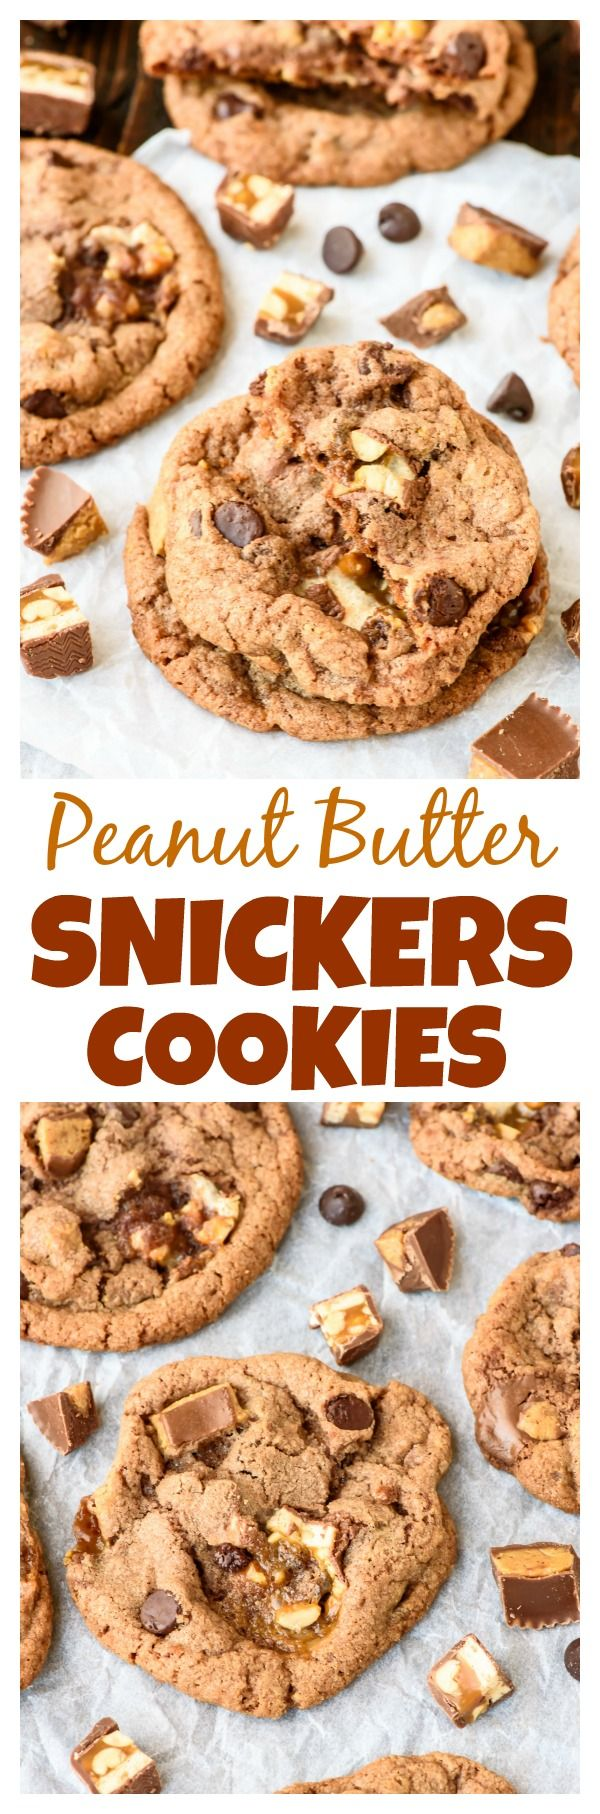 Use your Halloween candy to make Soft and Chewy Peanut Butter Snickers Cookies! PERFECT soft, chewy cookies loaded with Snickers bars, Reeses peanut butter cups, and chocolate chips. Even better than a candy bar!